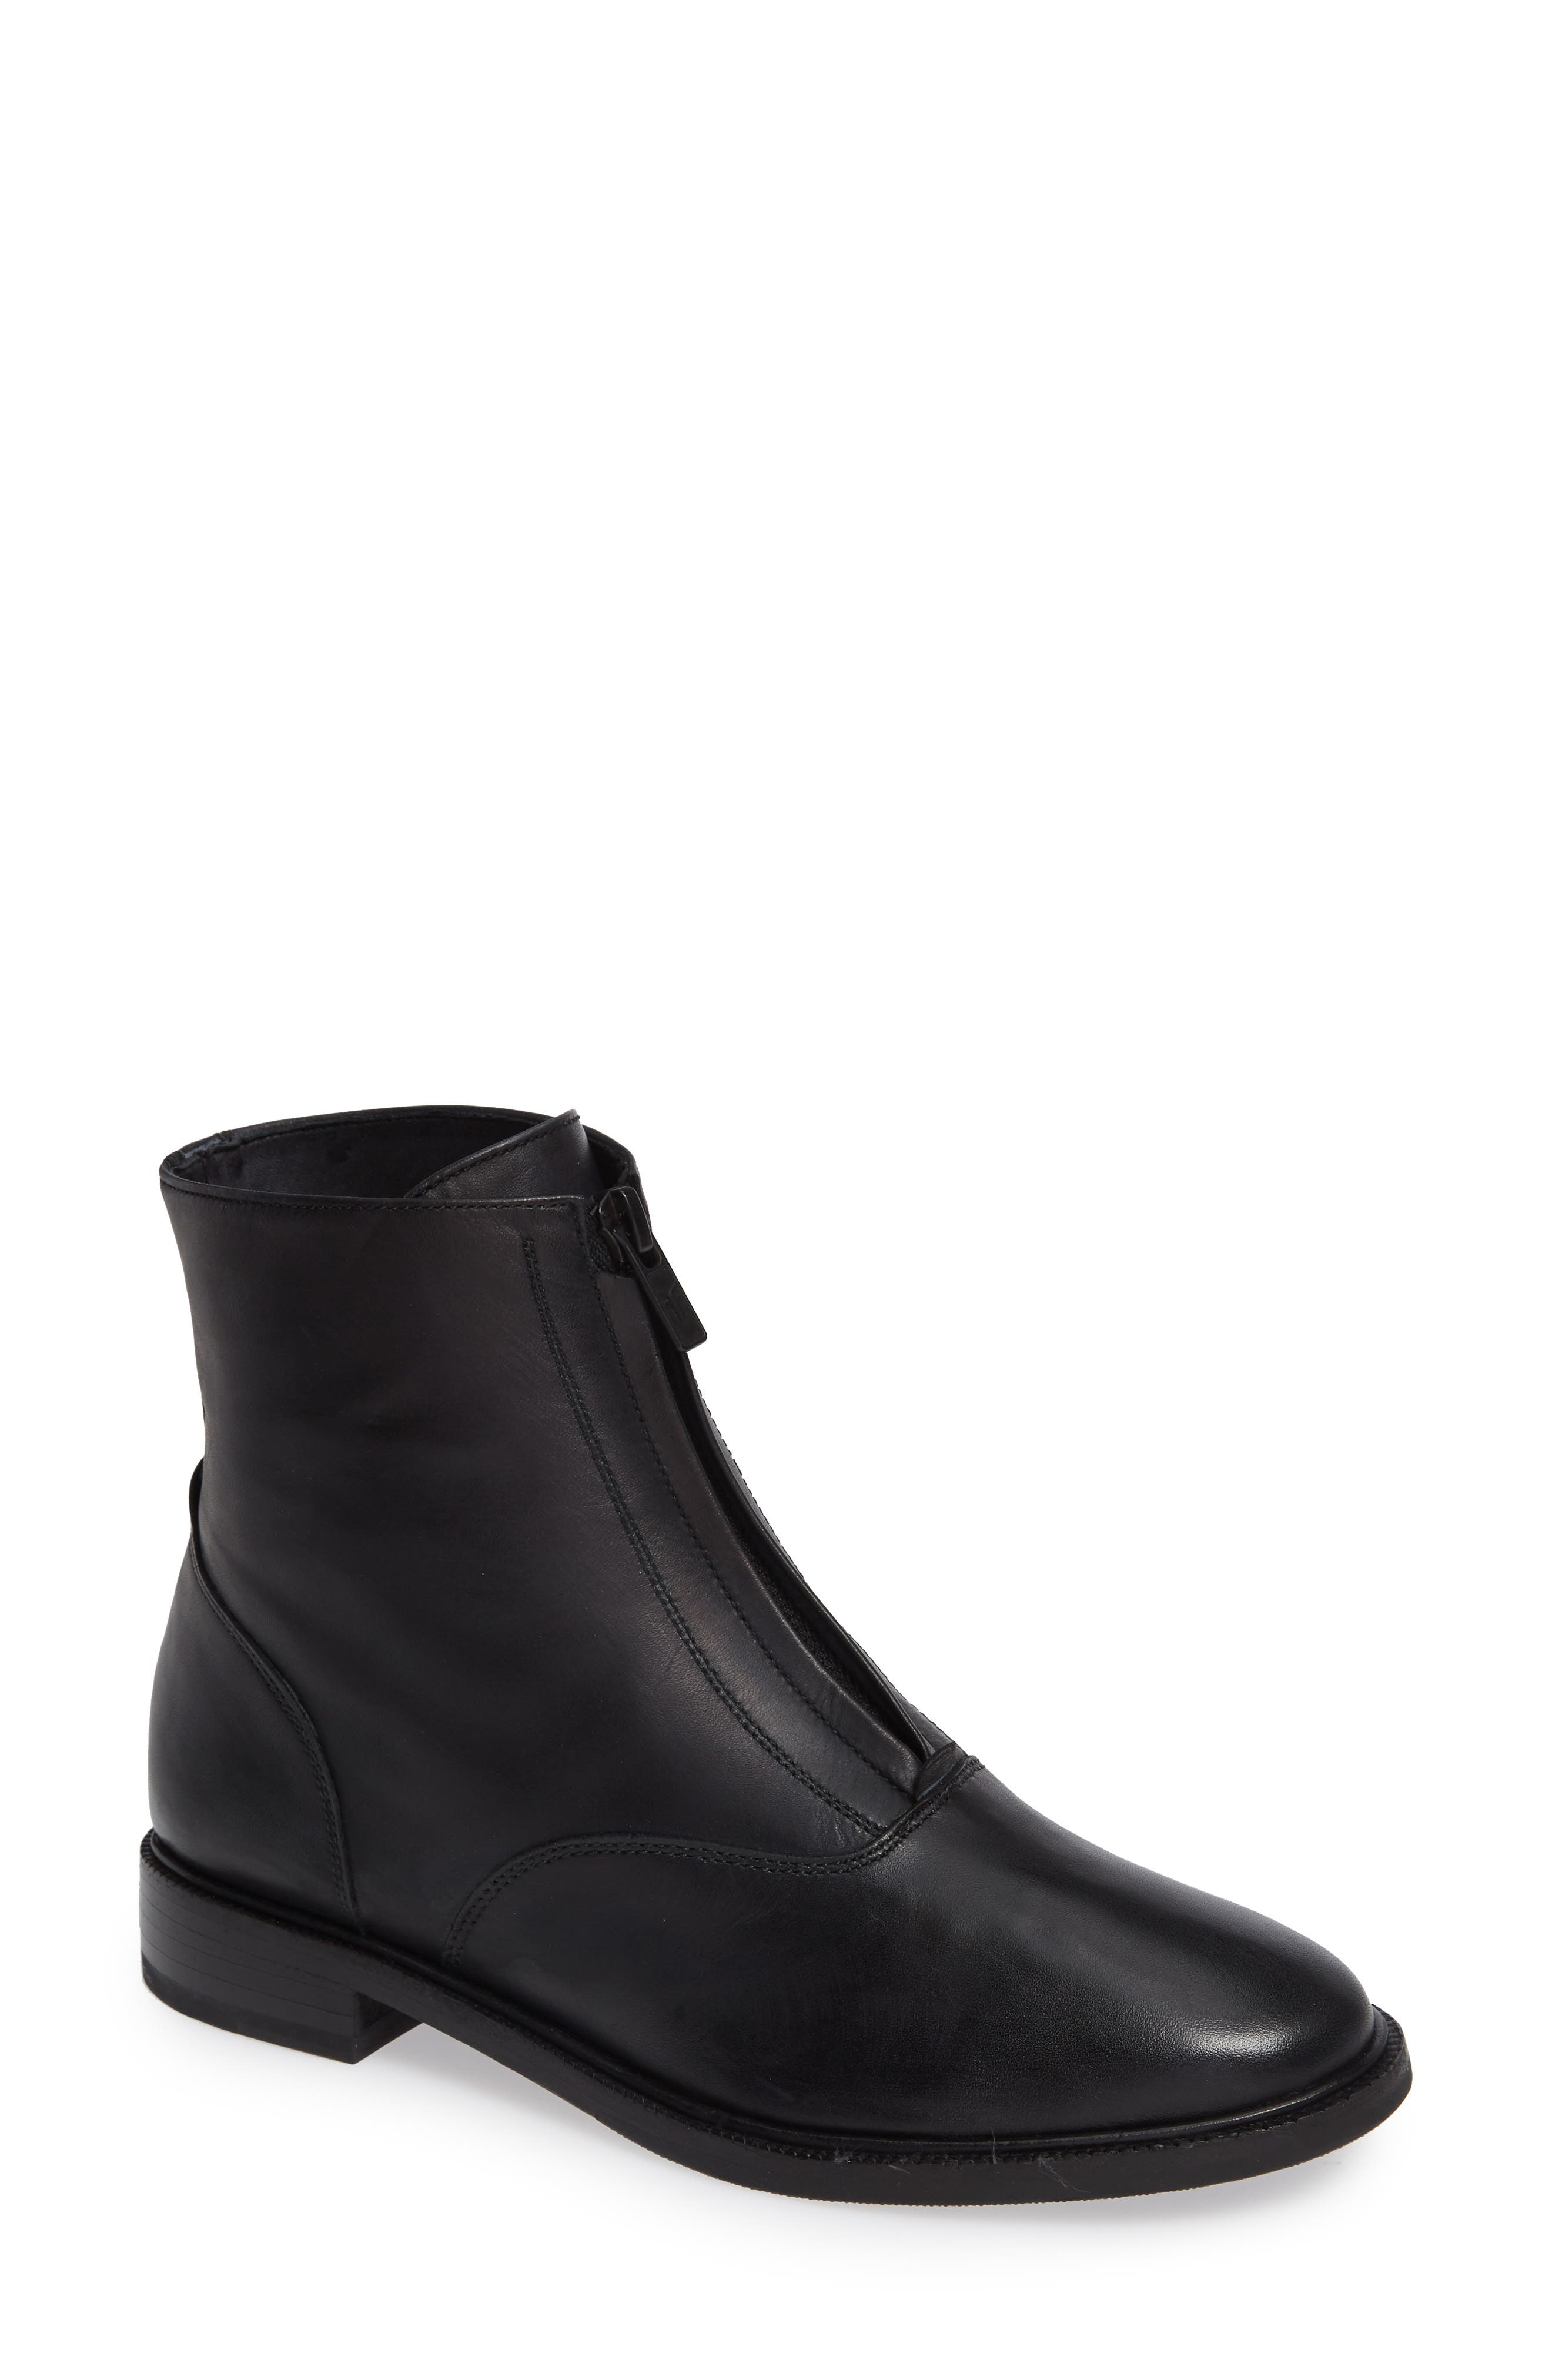 Frye Kelly Zip Bootie, Black